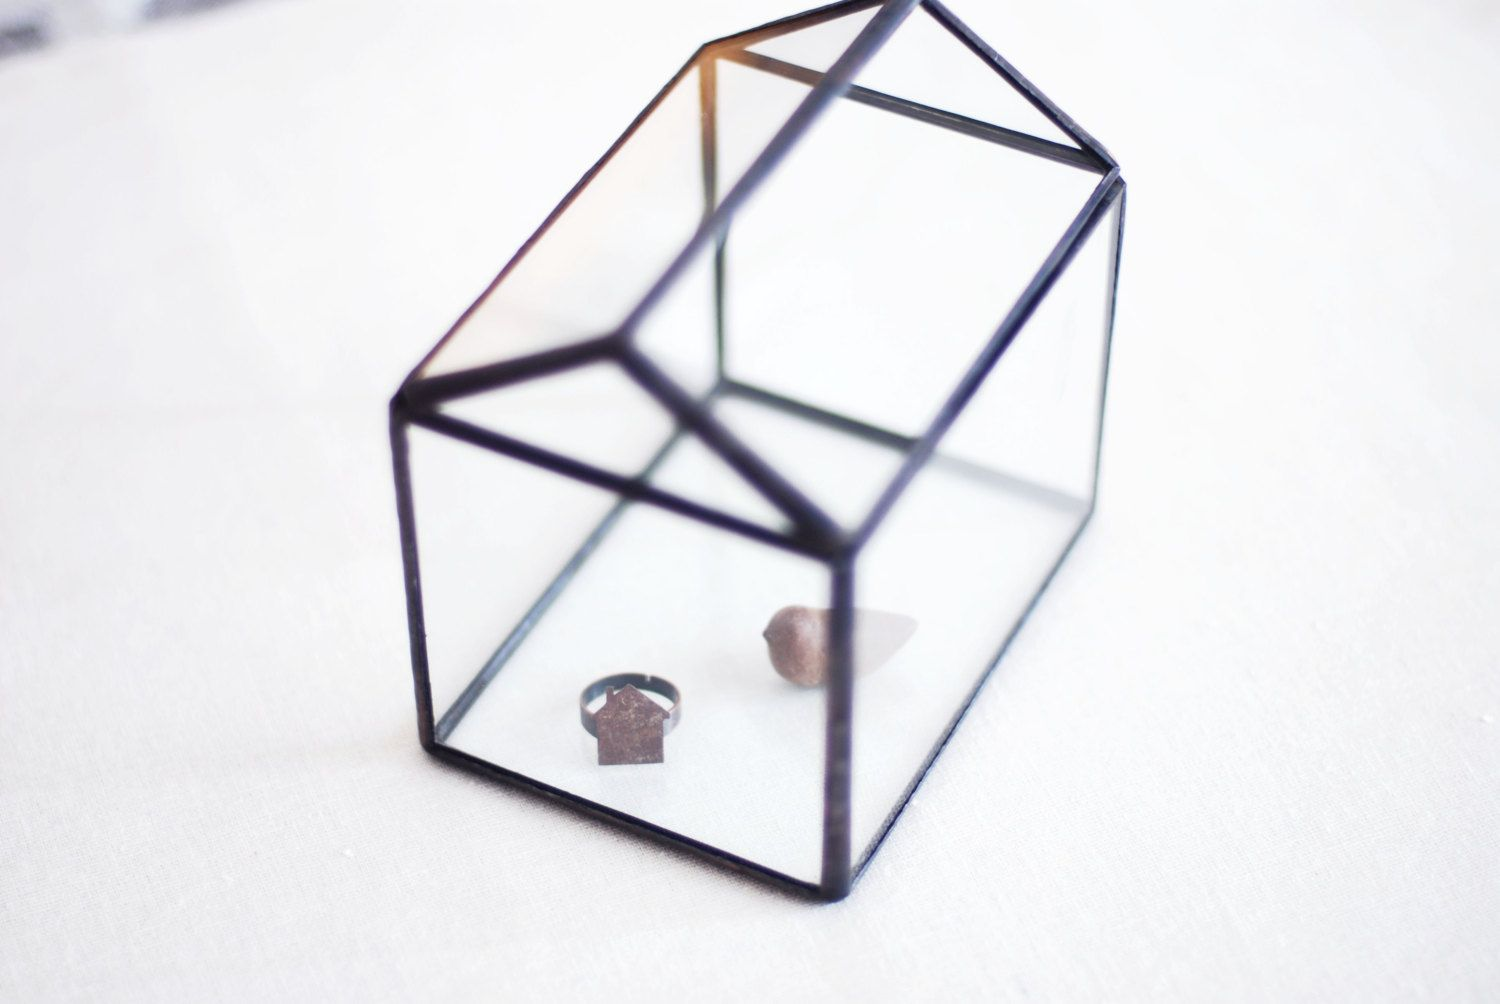 glass house with a hinged roof by boxwoodtree on Etsy, $40.00